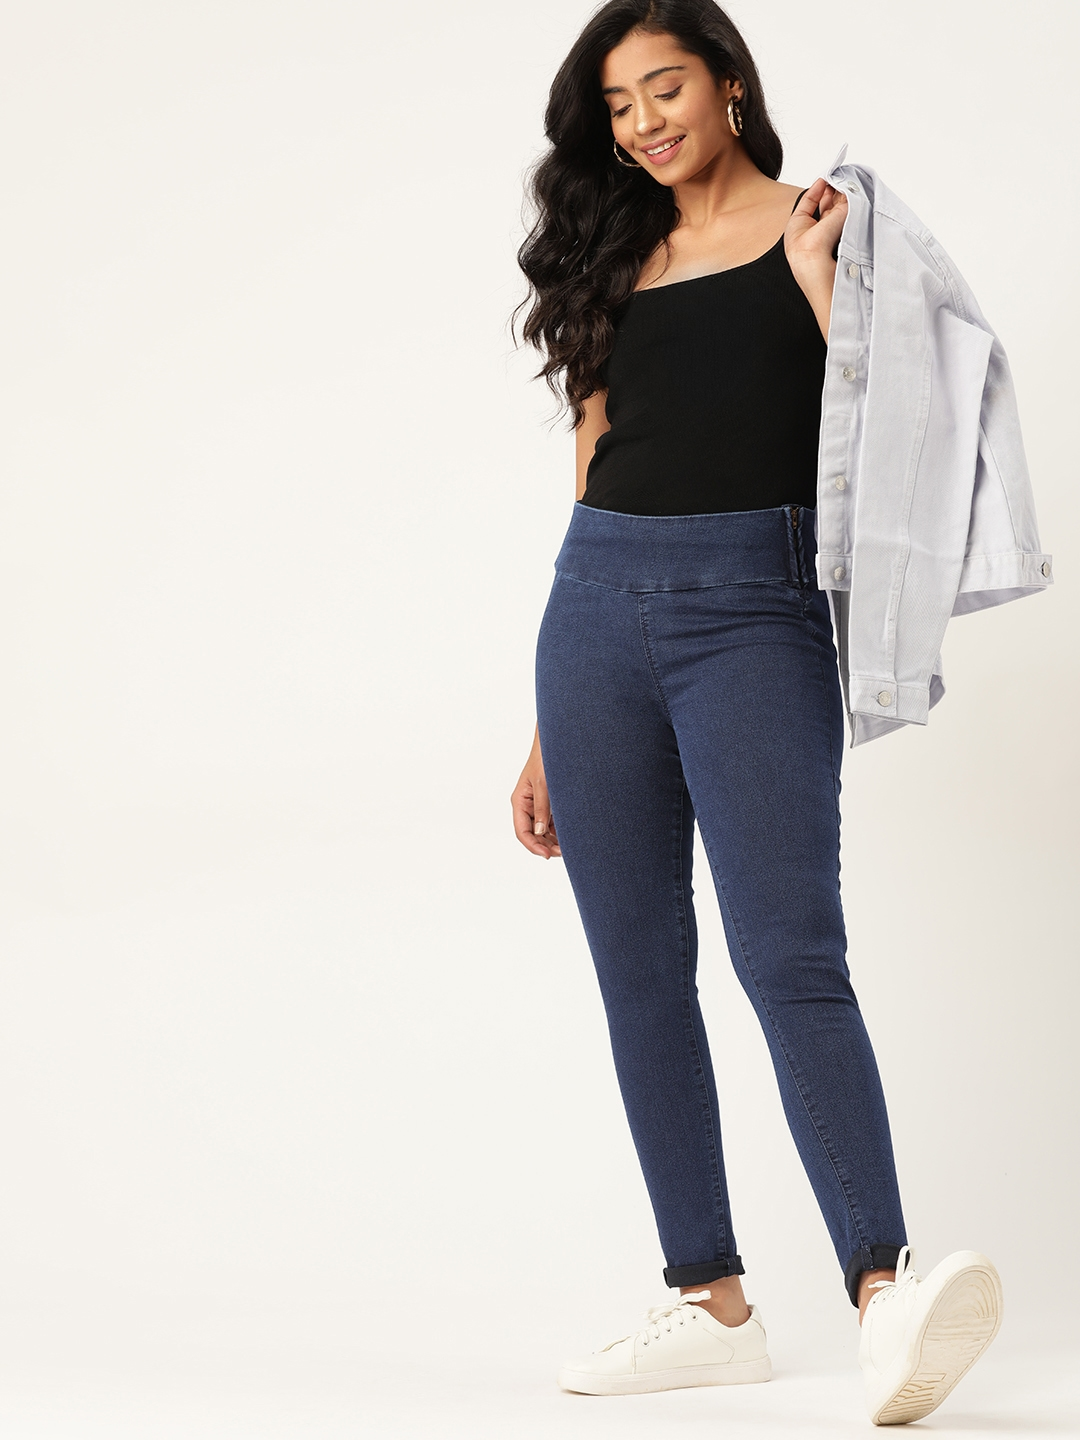 DressBerry Woman Blue Solid Super Skinny Fit Stretchable Jeggings